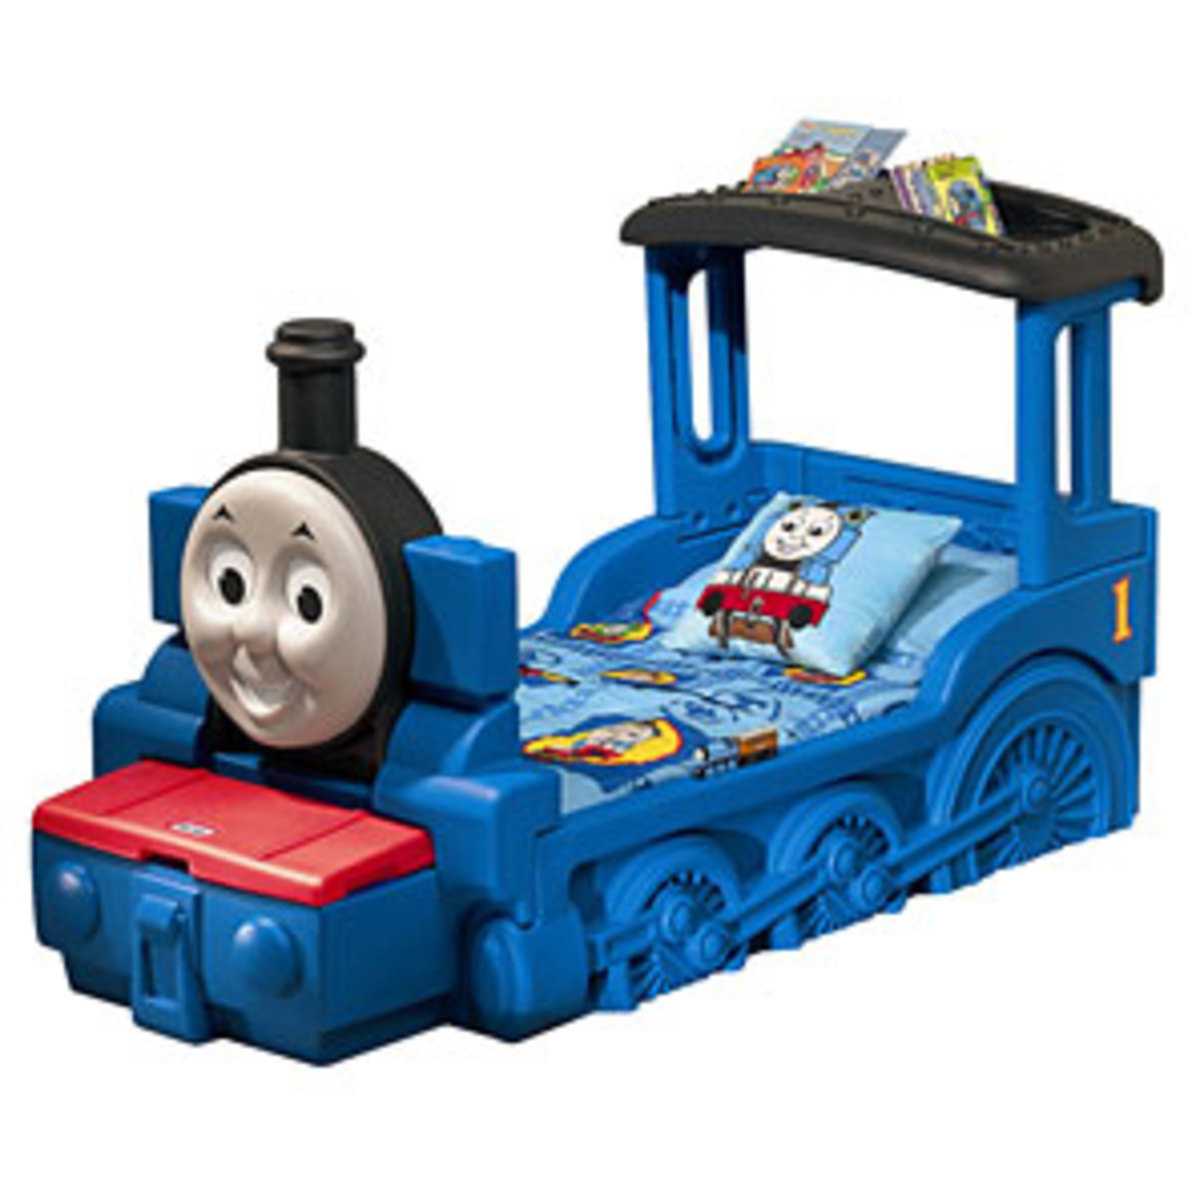 Http Sunforged Hubpages Com Hub Thomas The Tank Engine Beds And Bedroom Sets